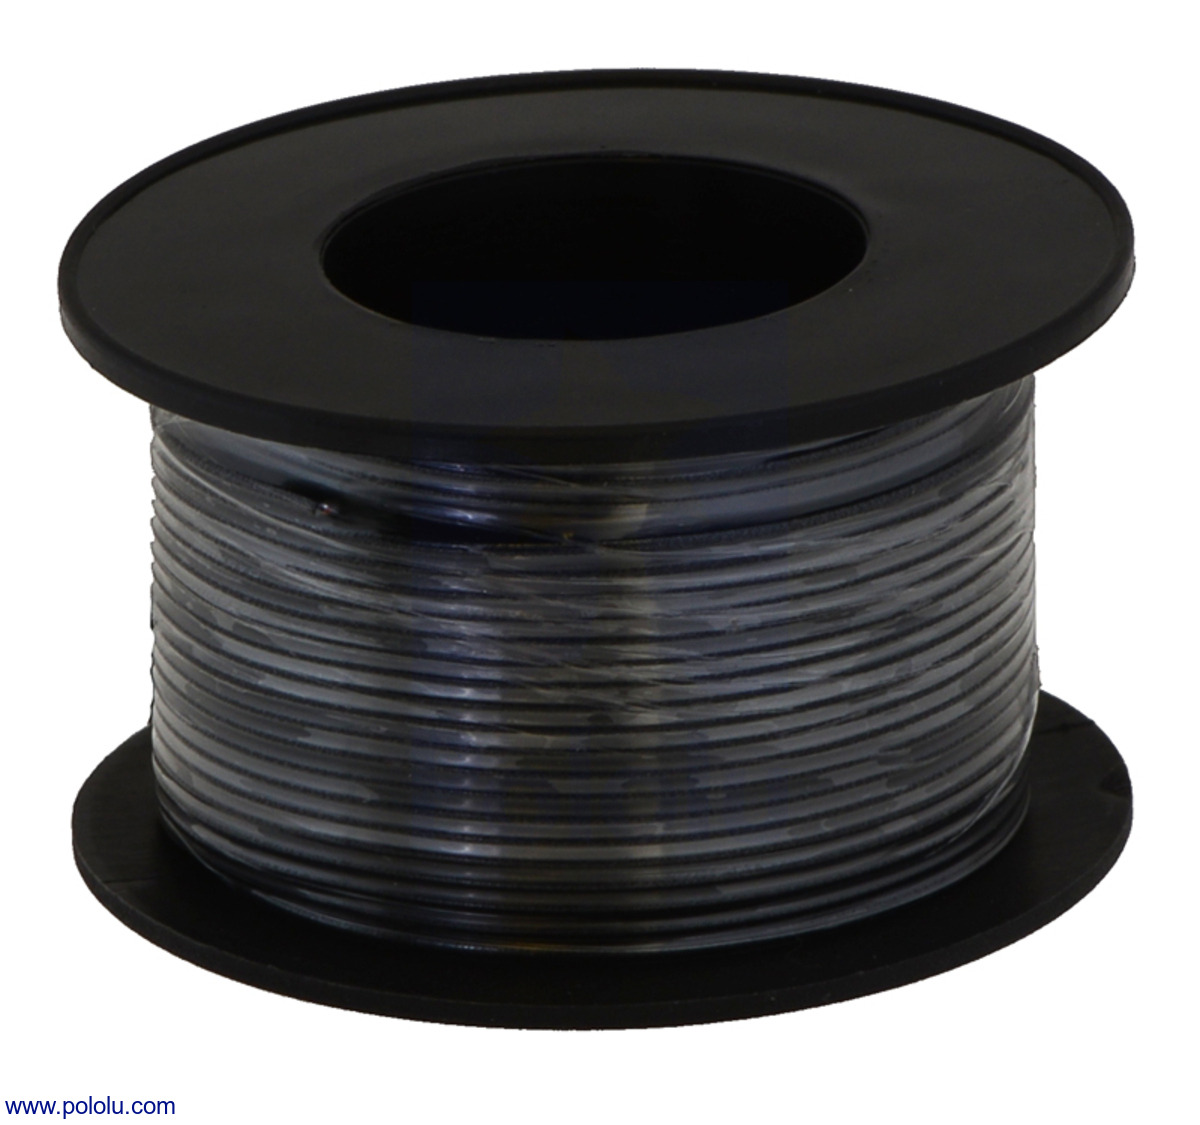 Pololu stranded wire black 30 awg 100 feet stranded wire black 30 awg 100 feet greentooth